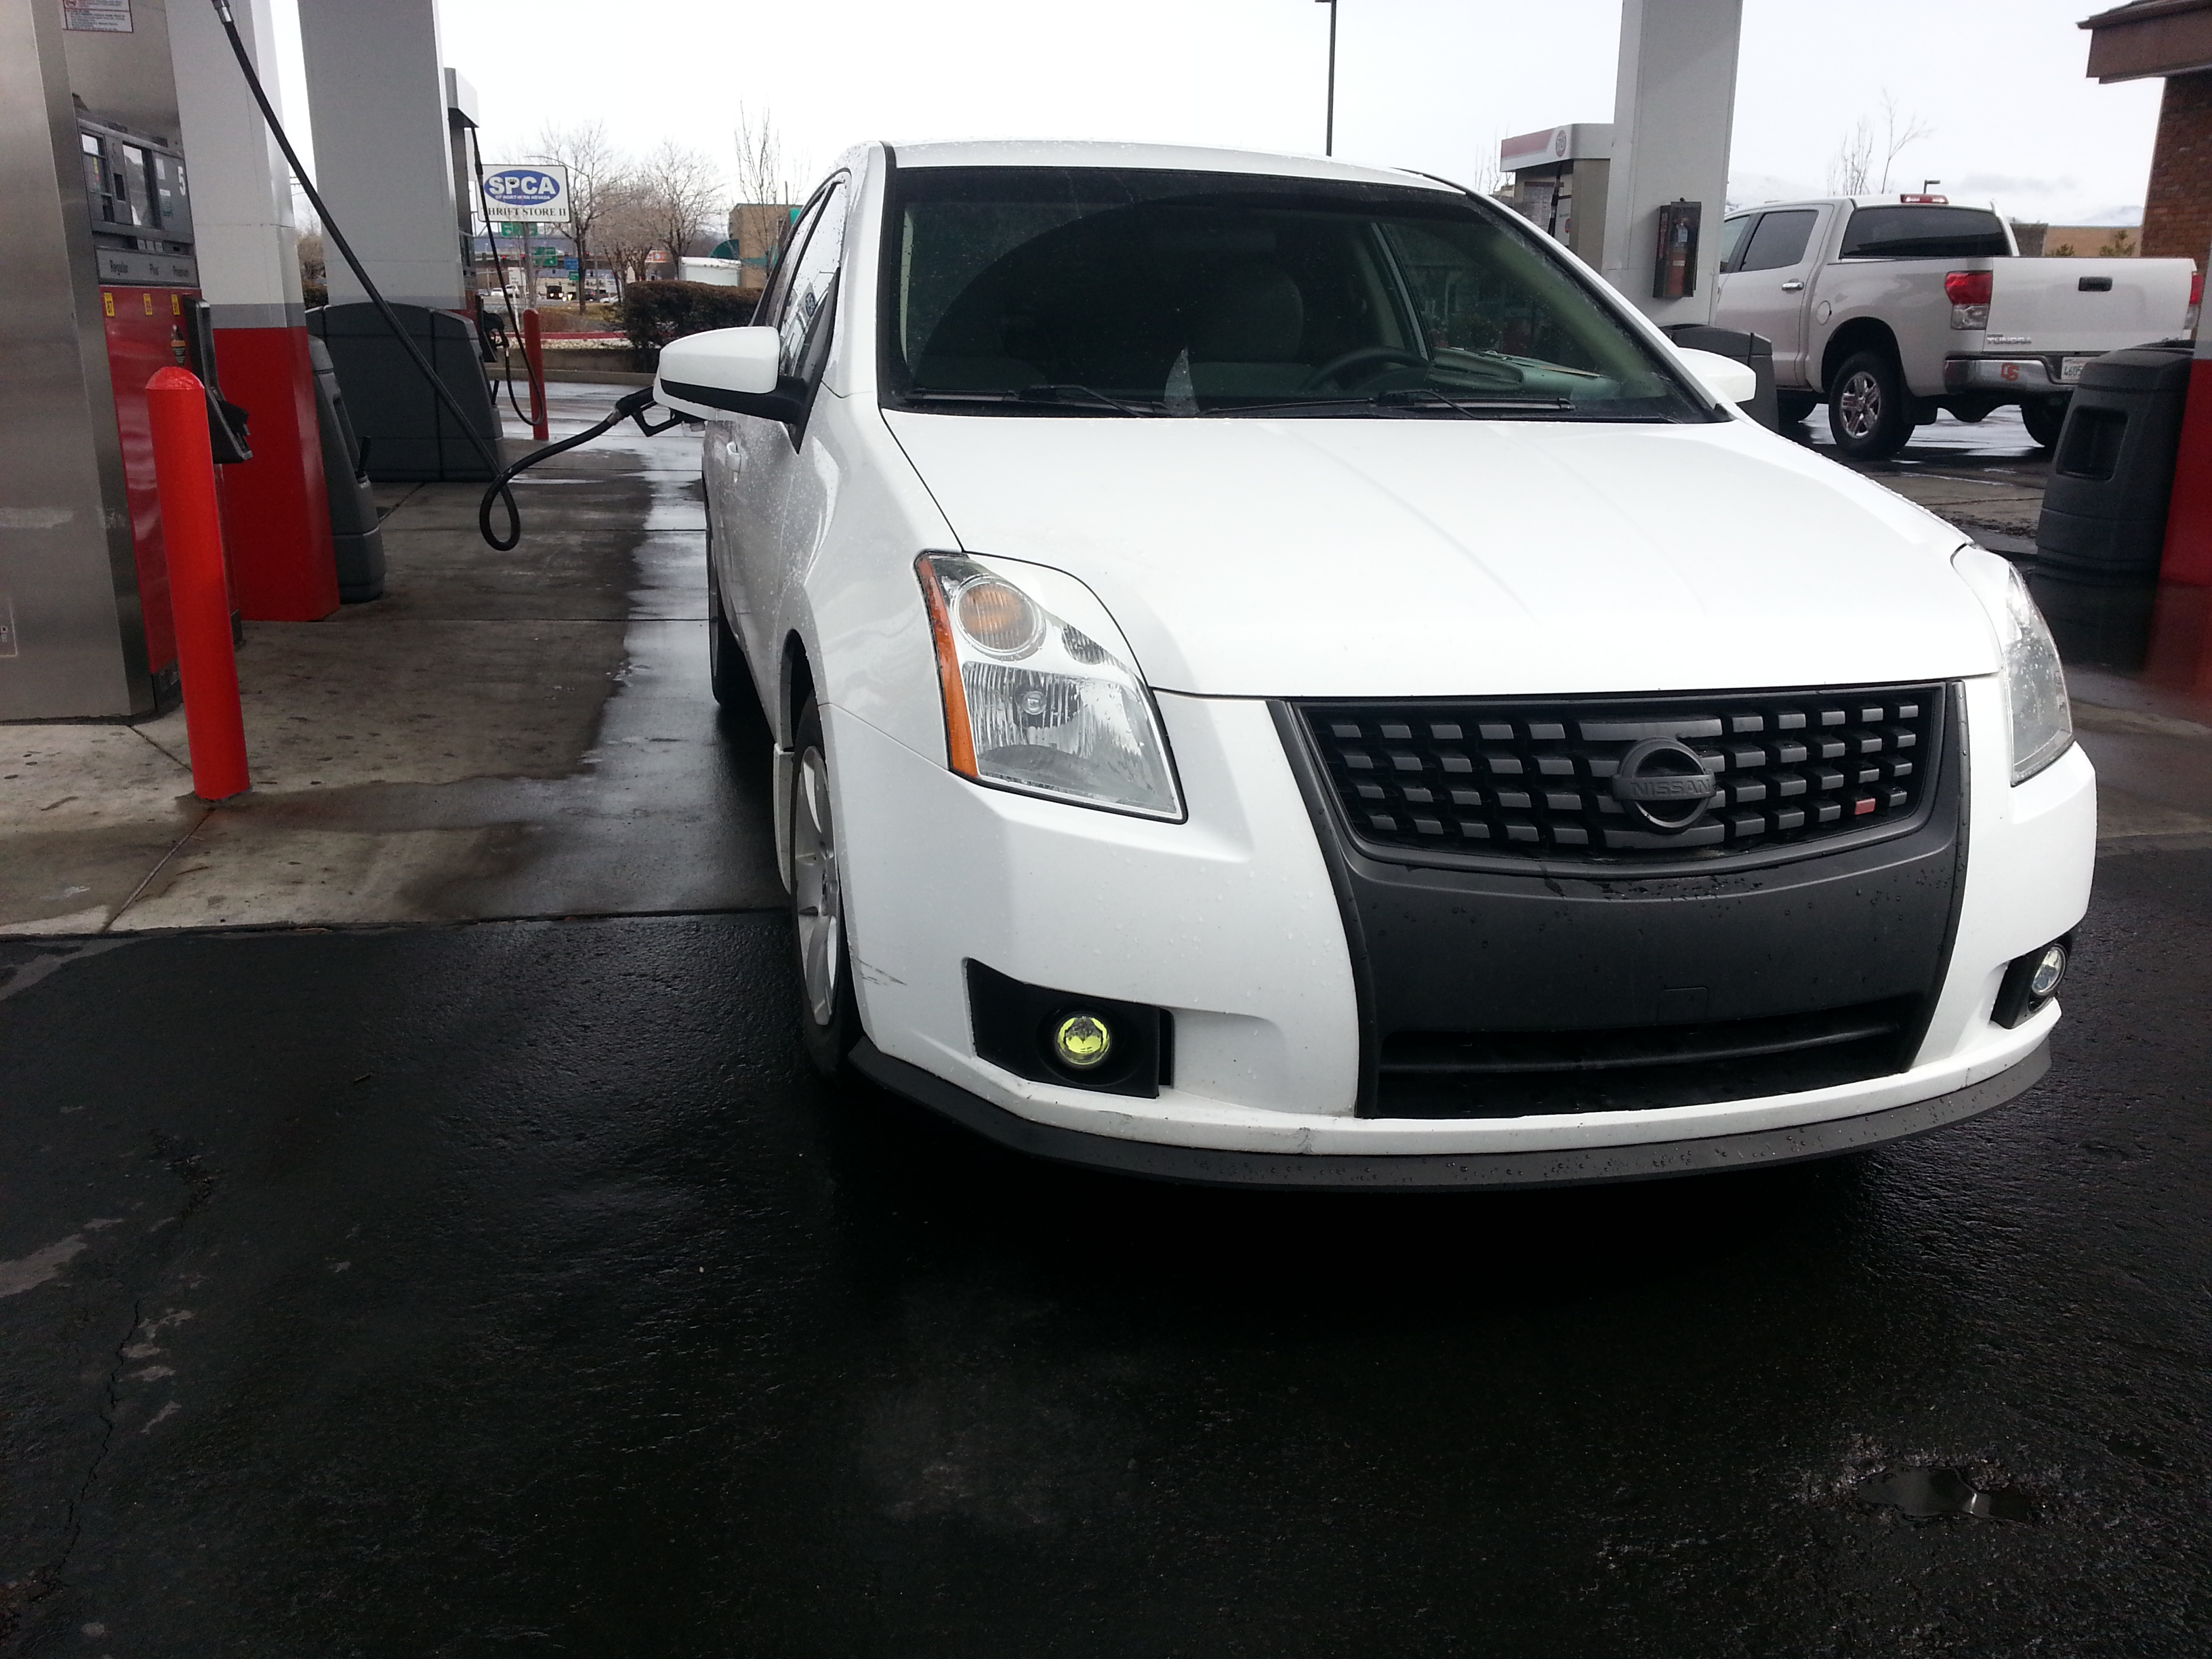 The White Shadow 2009 Nissan Sentra